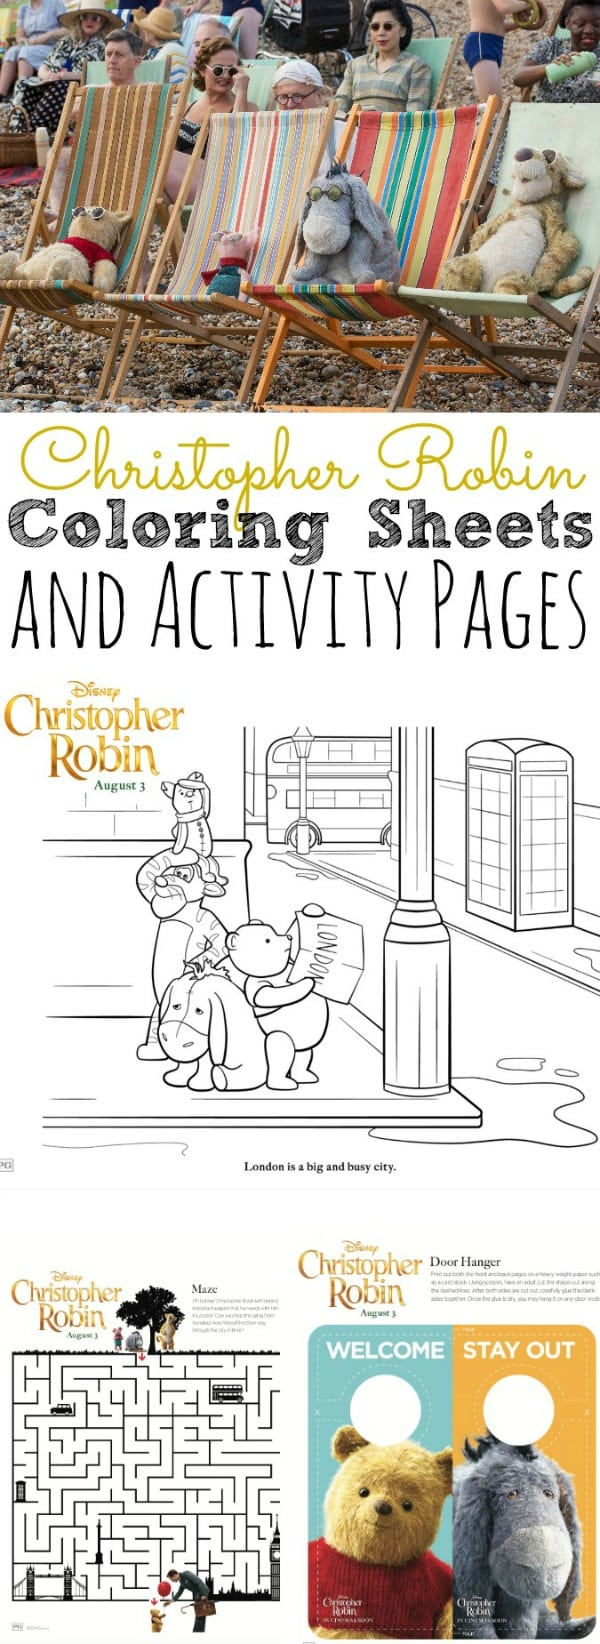 Free Christopher Robin Coloring Pages and Activity Sheets - simplytodaylife.com